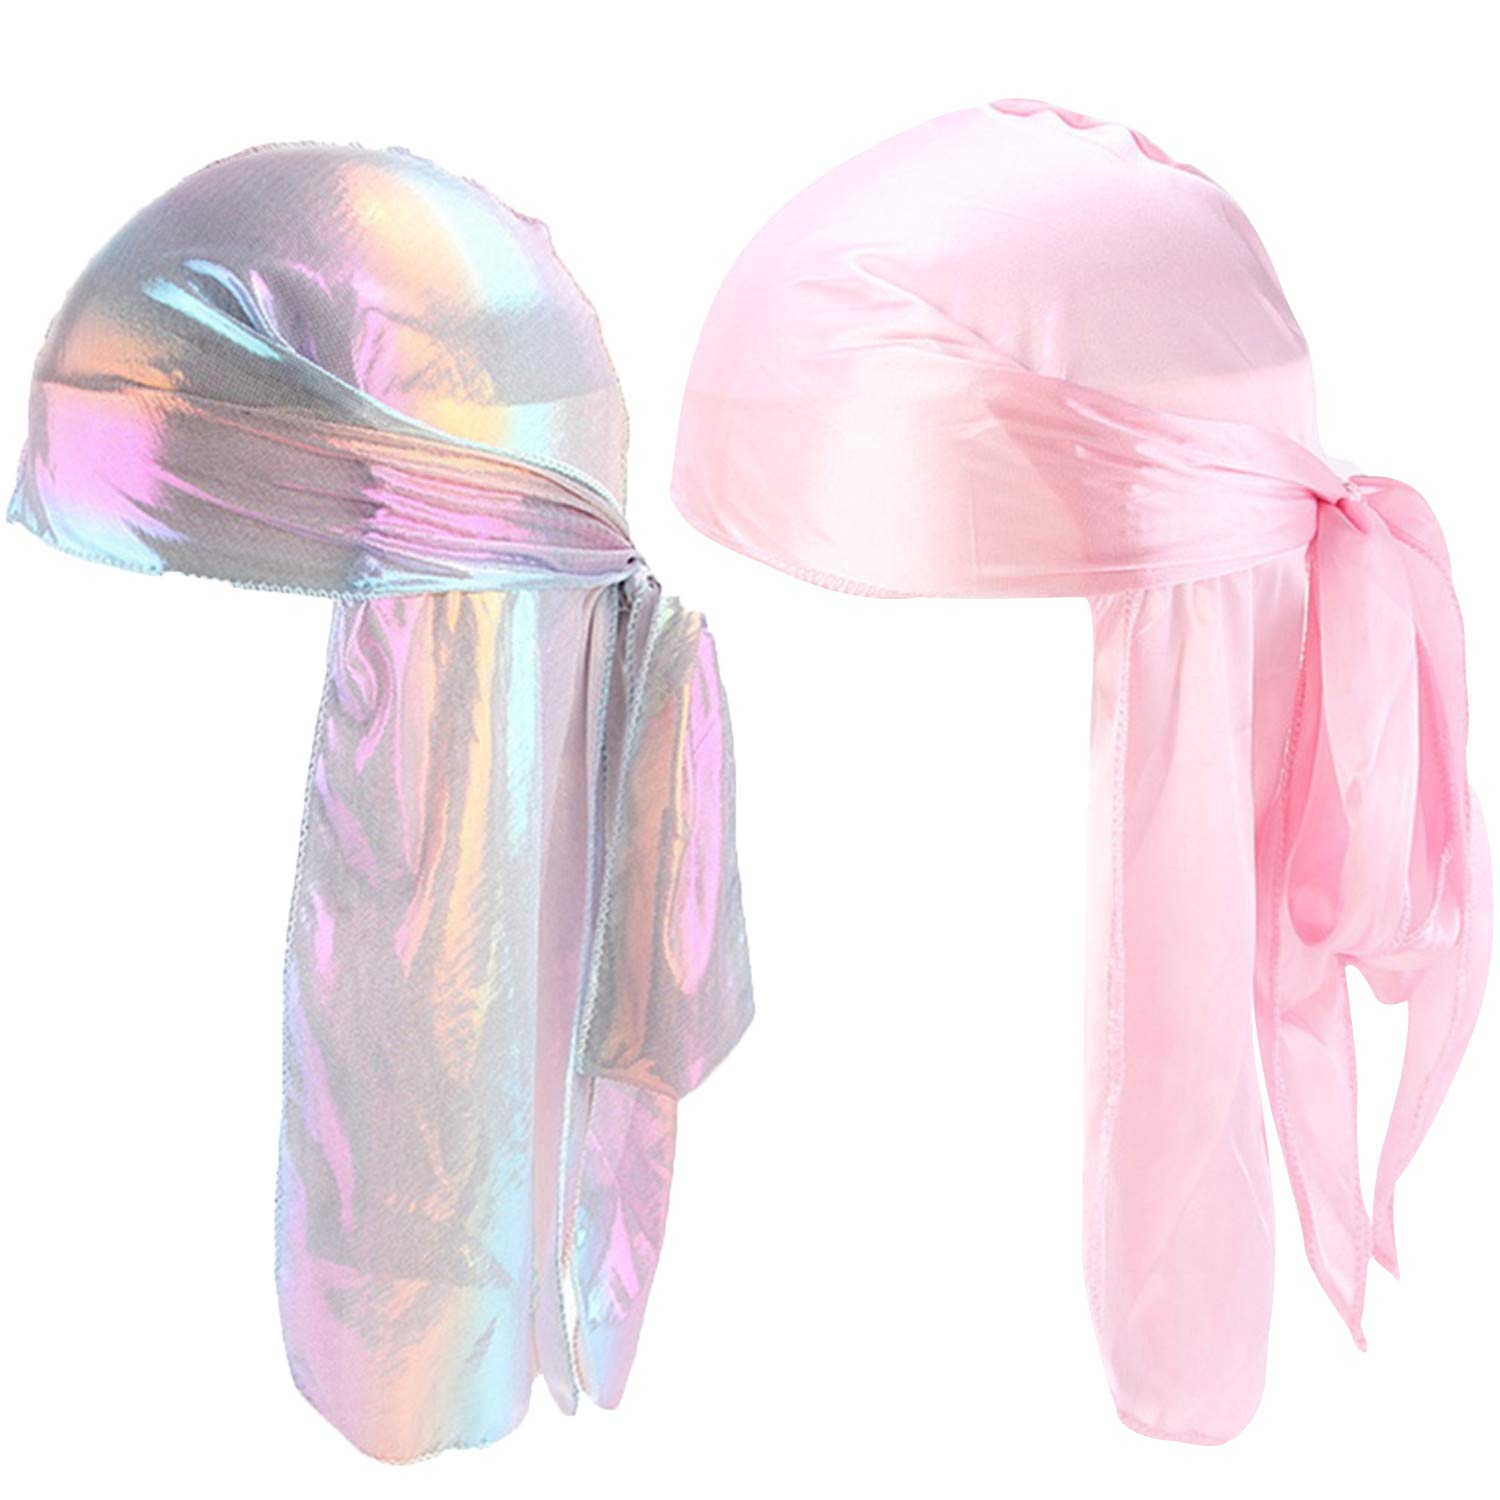 Unisex 2PCS Deluxe Silky Durag Extra Long-Tail Headwraps Pirate Cap 360 Waves Du-RAG (Laser Pink+Pink)